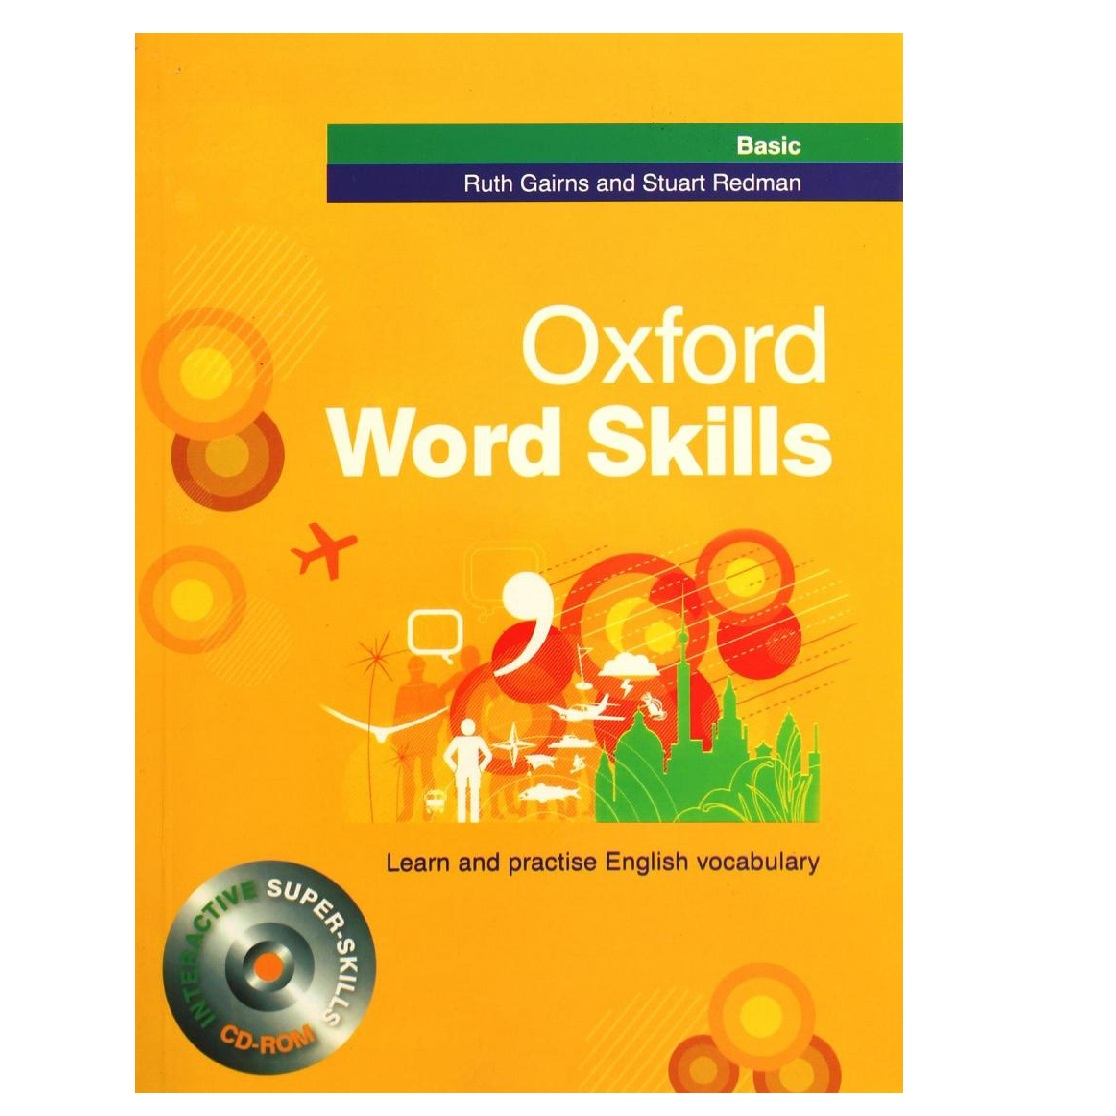 کتاب Oxford Word Skills Basic اثر  Ruth Gairns and Stuart Redman انتشارات Oxford